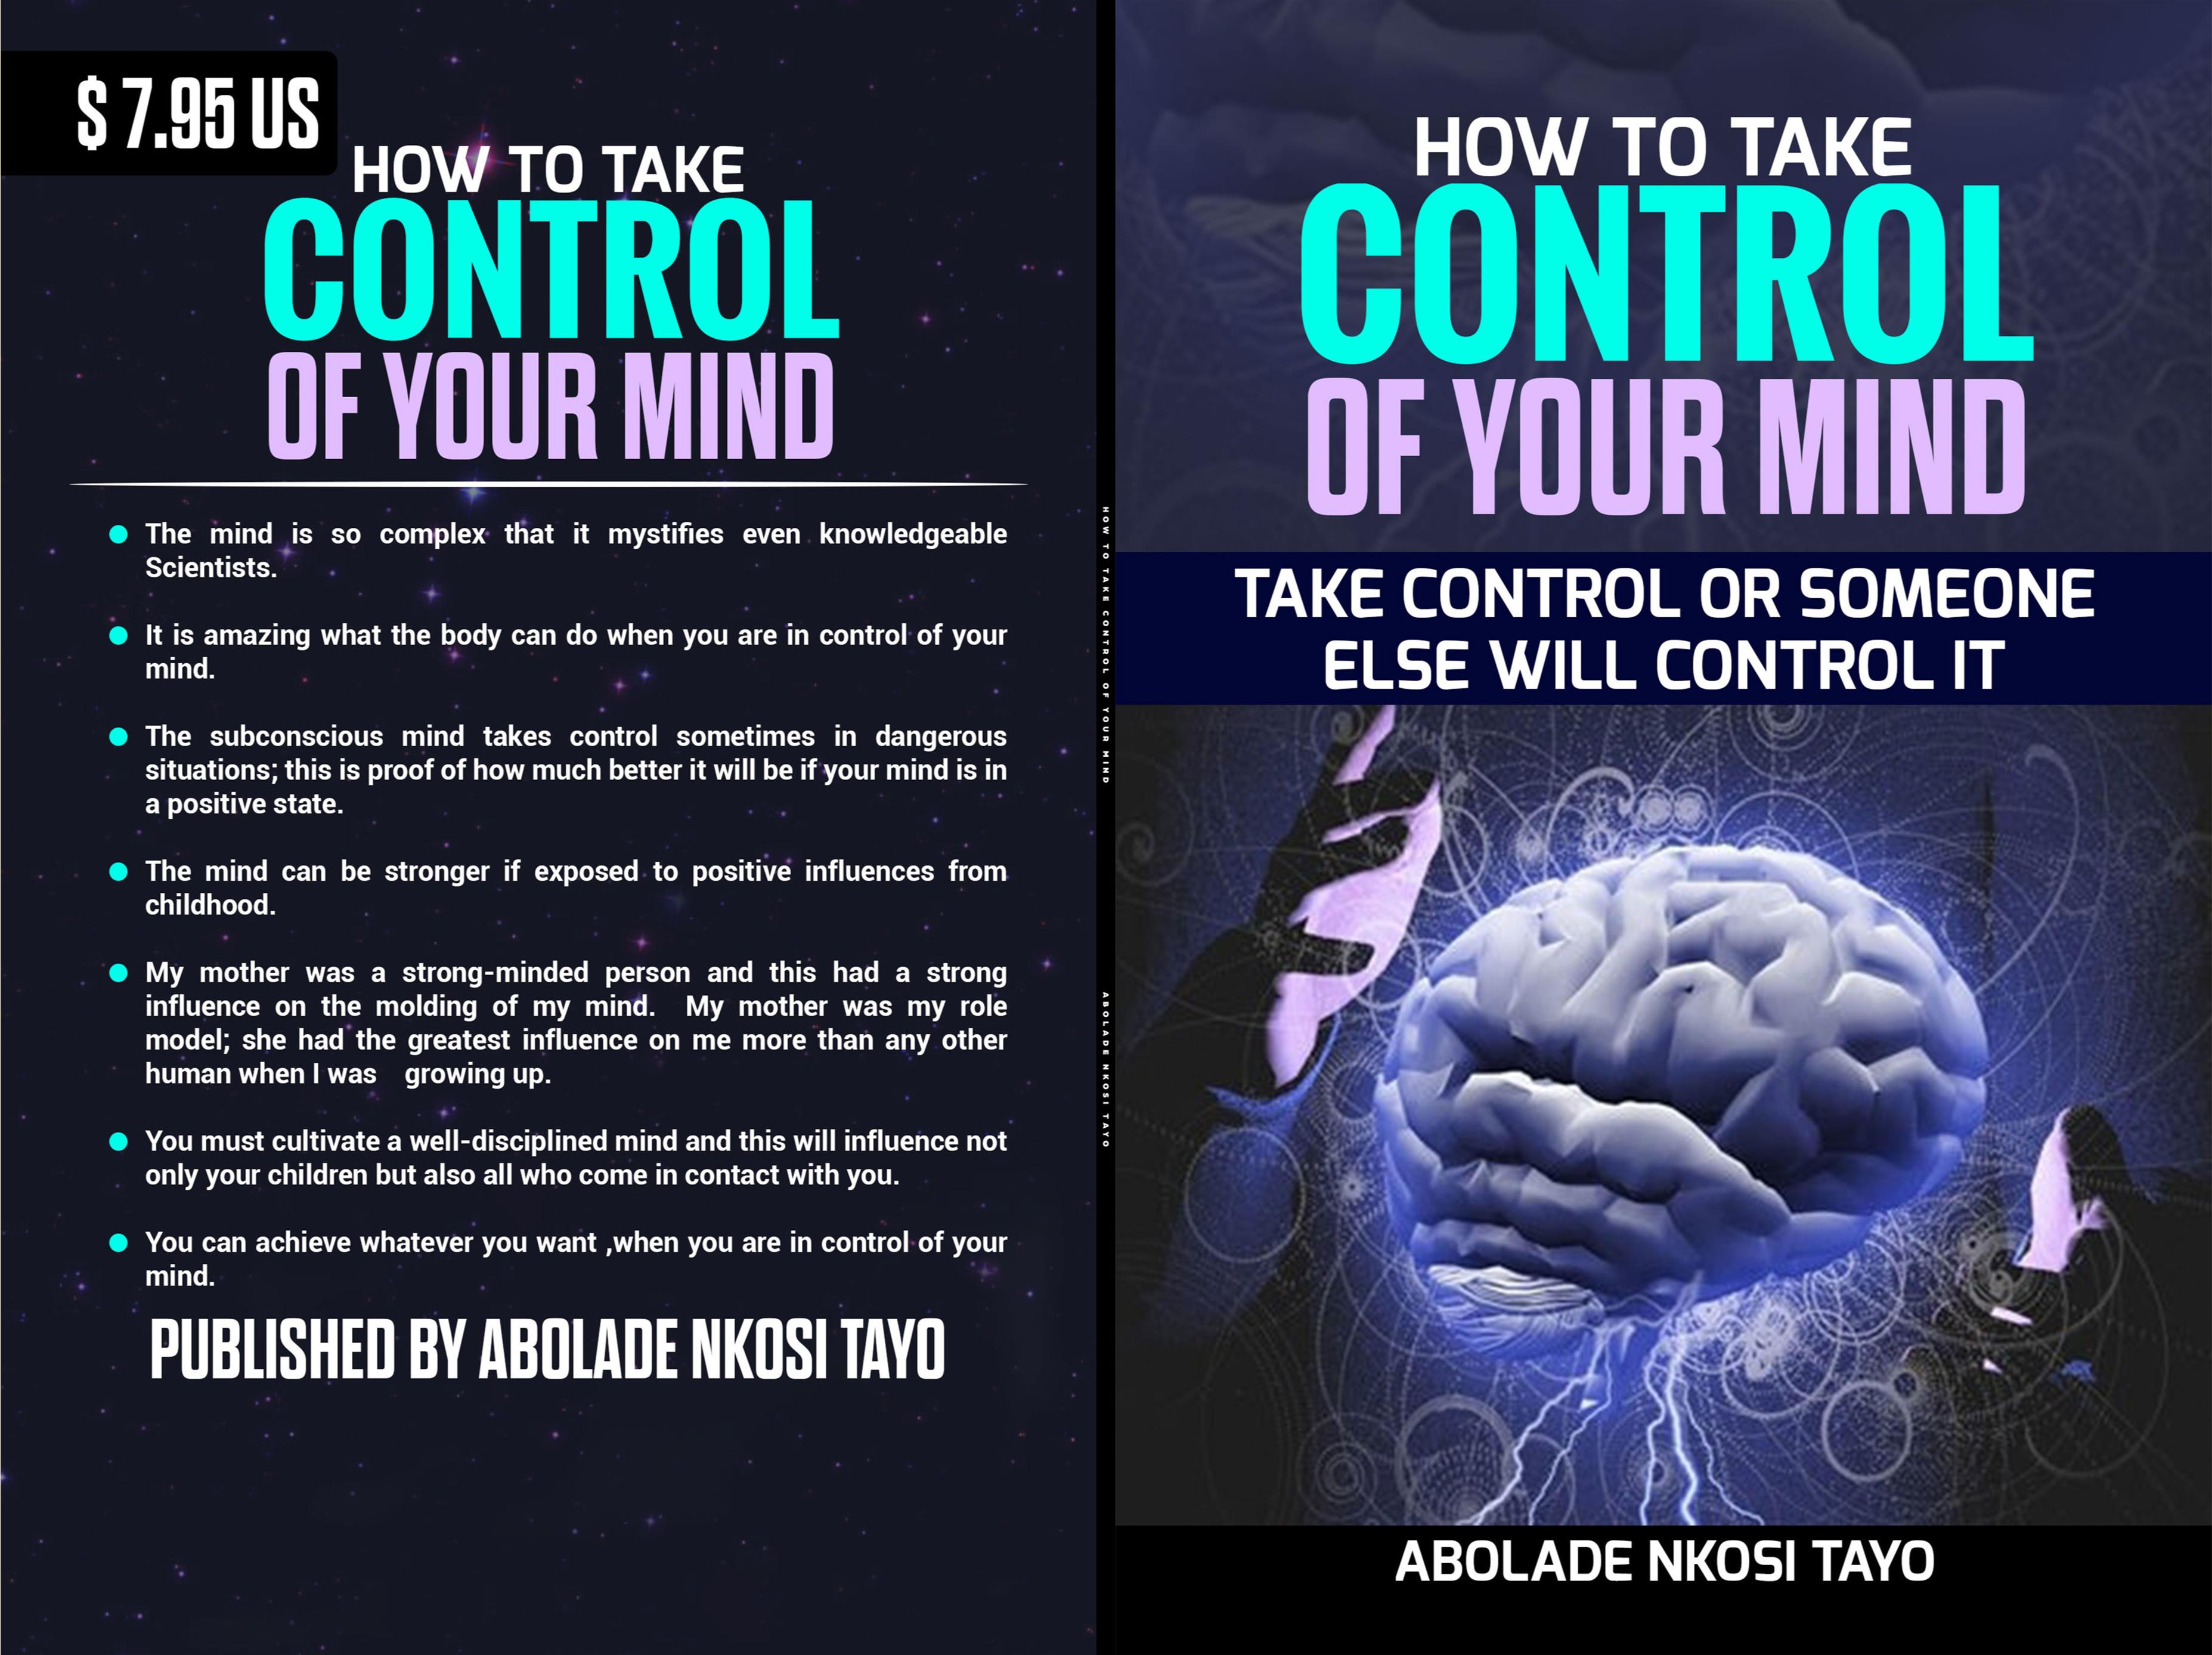 HOW TO TAKE CONTROL OF YOUR MIND cover image